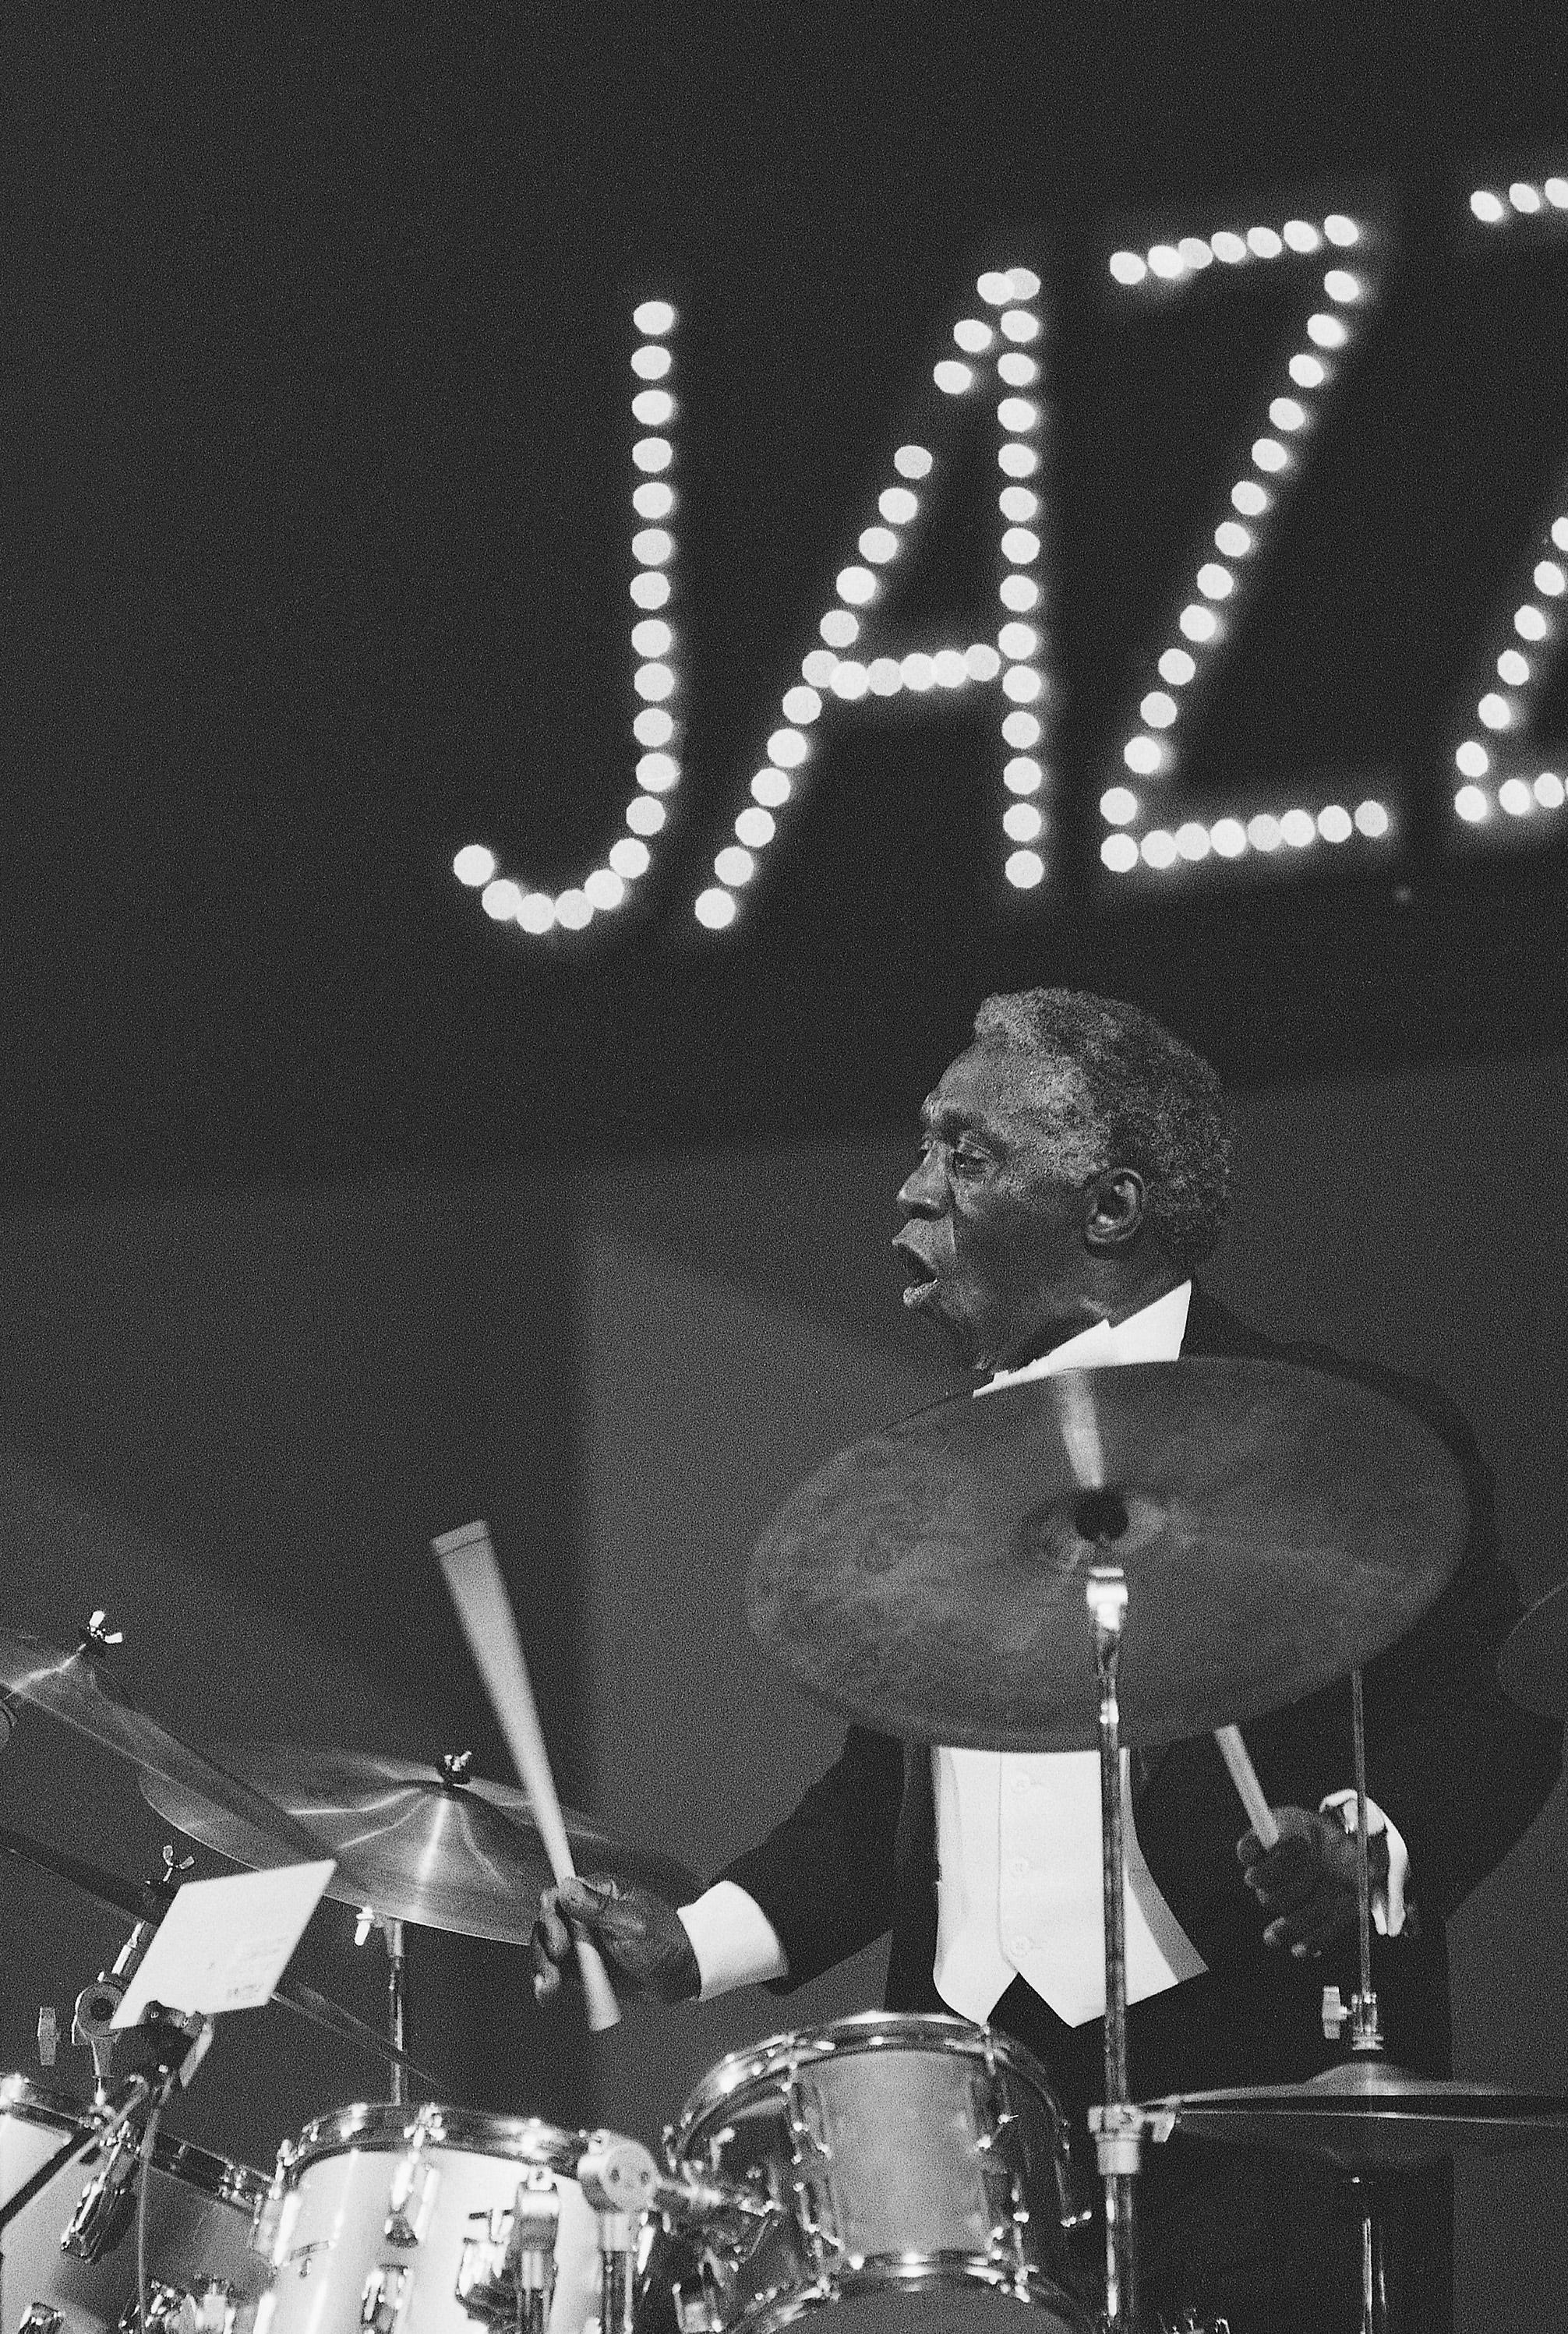 Drummer Art Blakey performs on opening night of the Kool Jazz Festival at Carnegie Hall Friday, June 27, 1981. His group is called The Jazz Messengers.